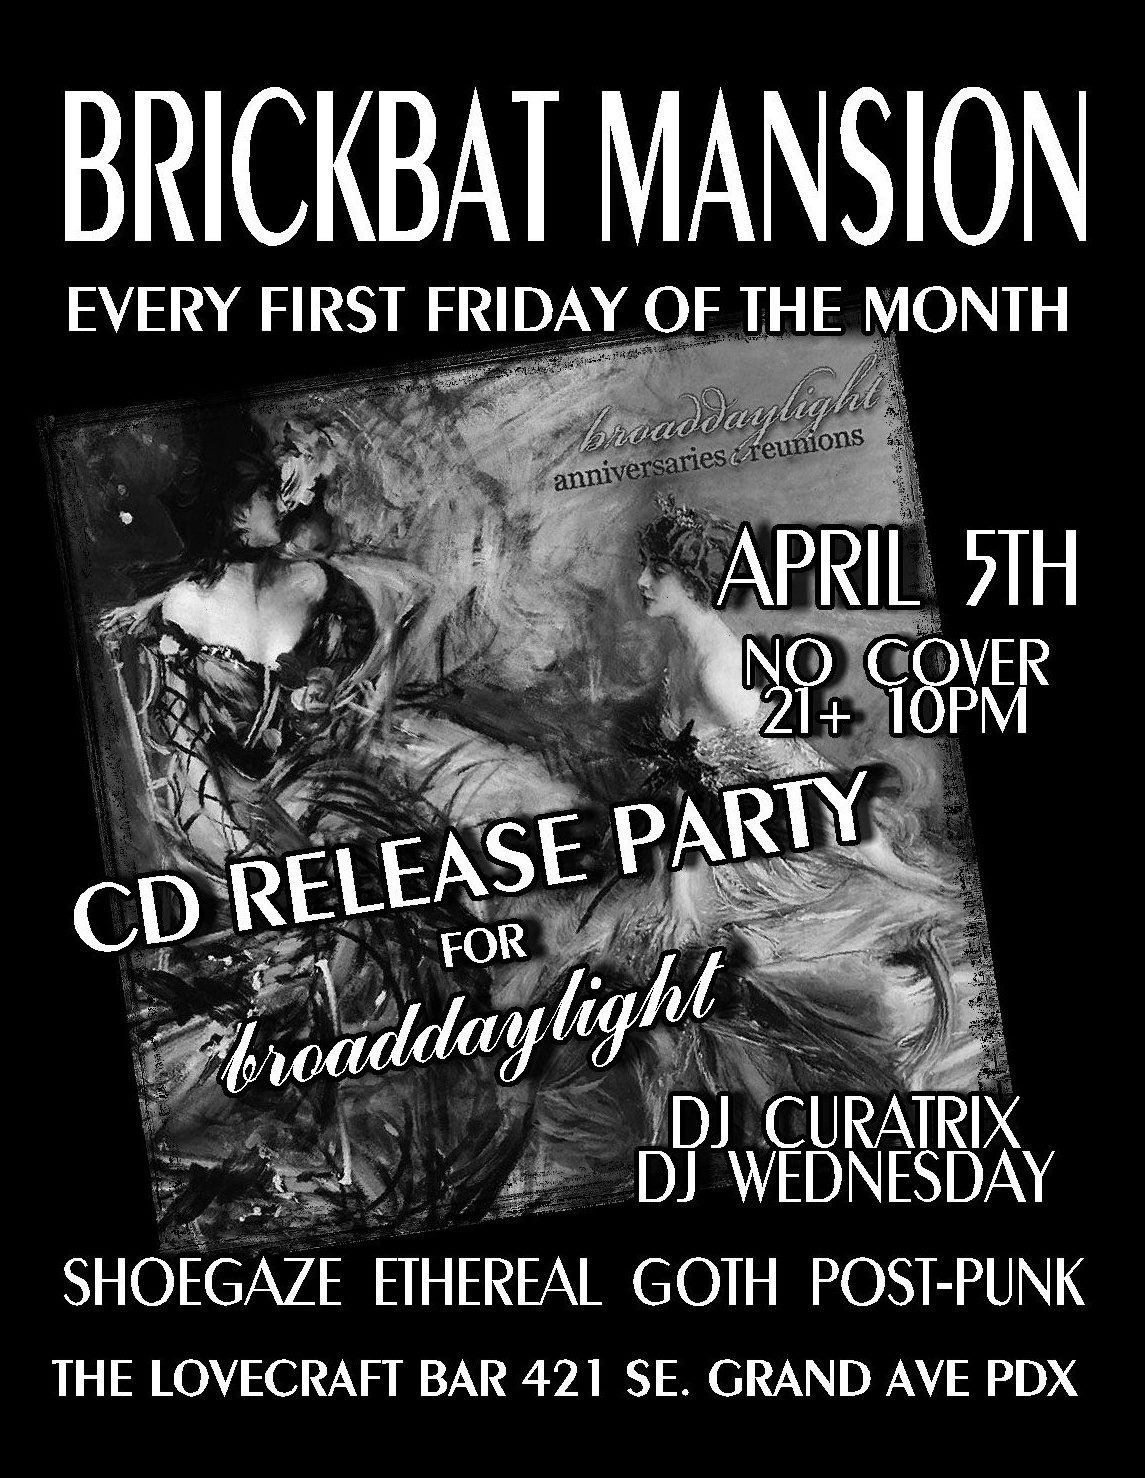 Brickbat mansion flyer for broaddaylight anniversaries:reunions record release party - Portland, OR